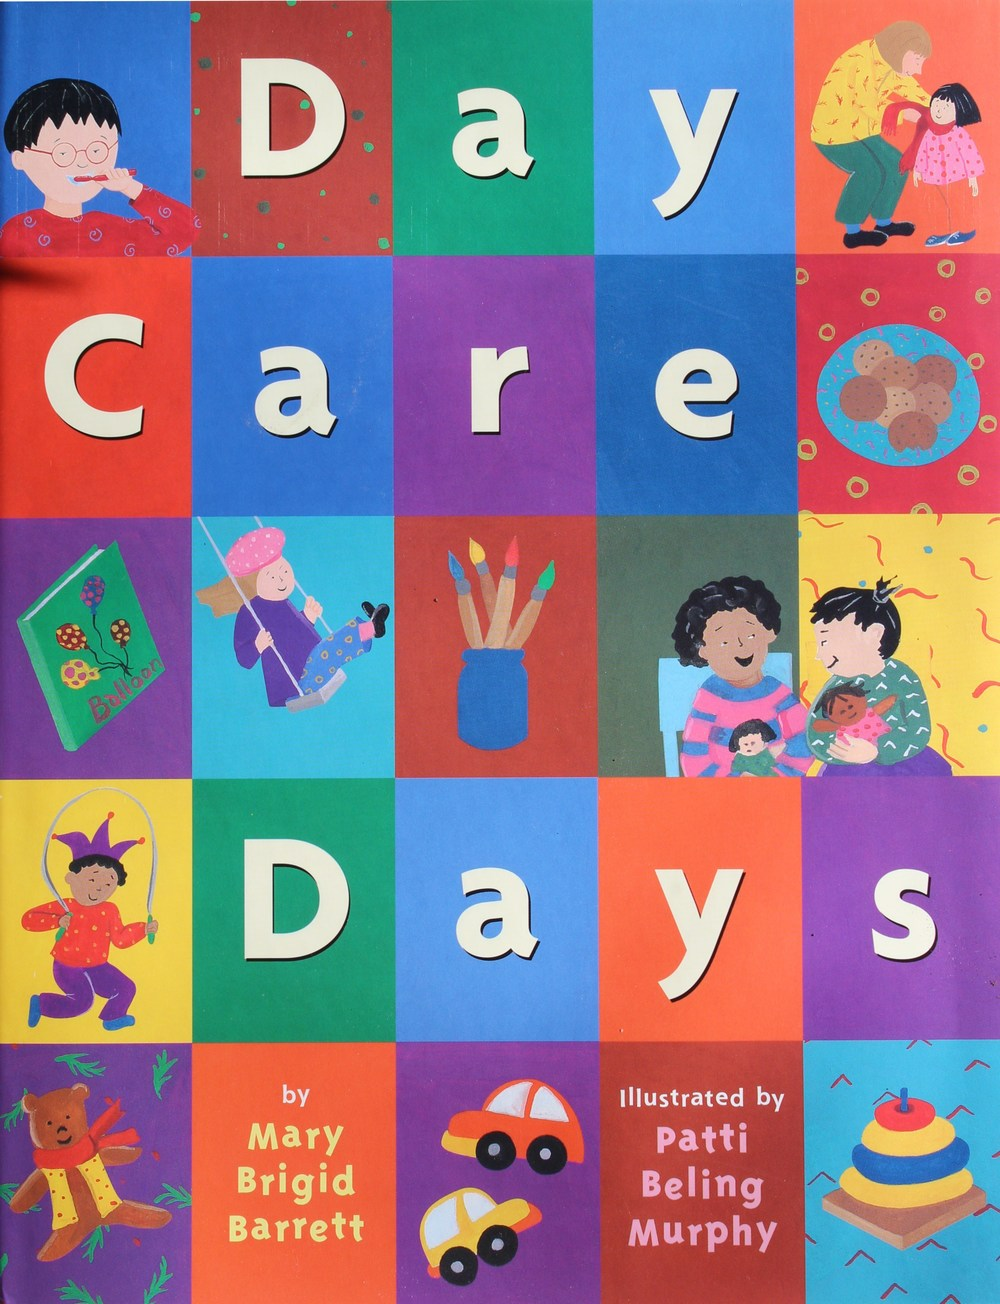 "Day Care Days by Mary Brigid Barrett illustrated Patty Beling Murphy © 1999 Little, Brown & Company A little boy recounts the events of his family's busy day, from waking up, getting dressed and off to day care, until his Daddy picks him and his baby brother up and brings them home.   Barrett presents a whirlwind tour of the ups and downs of a young boy's day. The scope of the book is broader than just day care; it begins with the family's waking, the morning ablutions, the car ride to day care, and, back at home, dinner, and bedtime. The pace of the rhyming text is a bit hurried, yet busy families will relate to the all-too-familiar activities. ""Quick, go potty!/Daddy shaves./Mommy, in the shower, waves./Sister, SWISH-SWISH, brushes teeth./Baby's diaper starts to leak!"" The illustrations, done in gouache on watercolor paper, while attractive, reinforce the sense of busyness-wallpaper, clothes, and rags are splashed with loud patterns and bright colors, creating a larger sense of disorder. There are even a few moments of sadness-a tear shed when Dad says good-bye and the loneliness felt by the protagonist and his baby brother when they are the last to be picked up at the end of the day. These incidents are, however, countered by moments of quiet tenderness. Overall, an upbeat and positive slice of life.School Library Journal; © 1999 Reed Business Information, Inc. Day Care Days won an Oppenheim Gold Award, given to outstanding new books that enhance children's lives, as well as being named one of the best books of 1999 by Working Mother's Magazine."